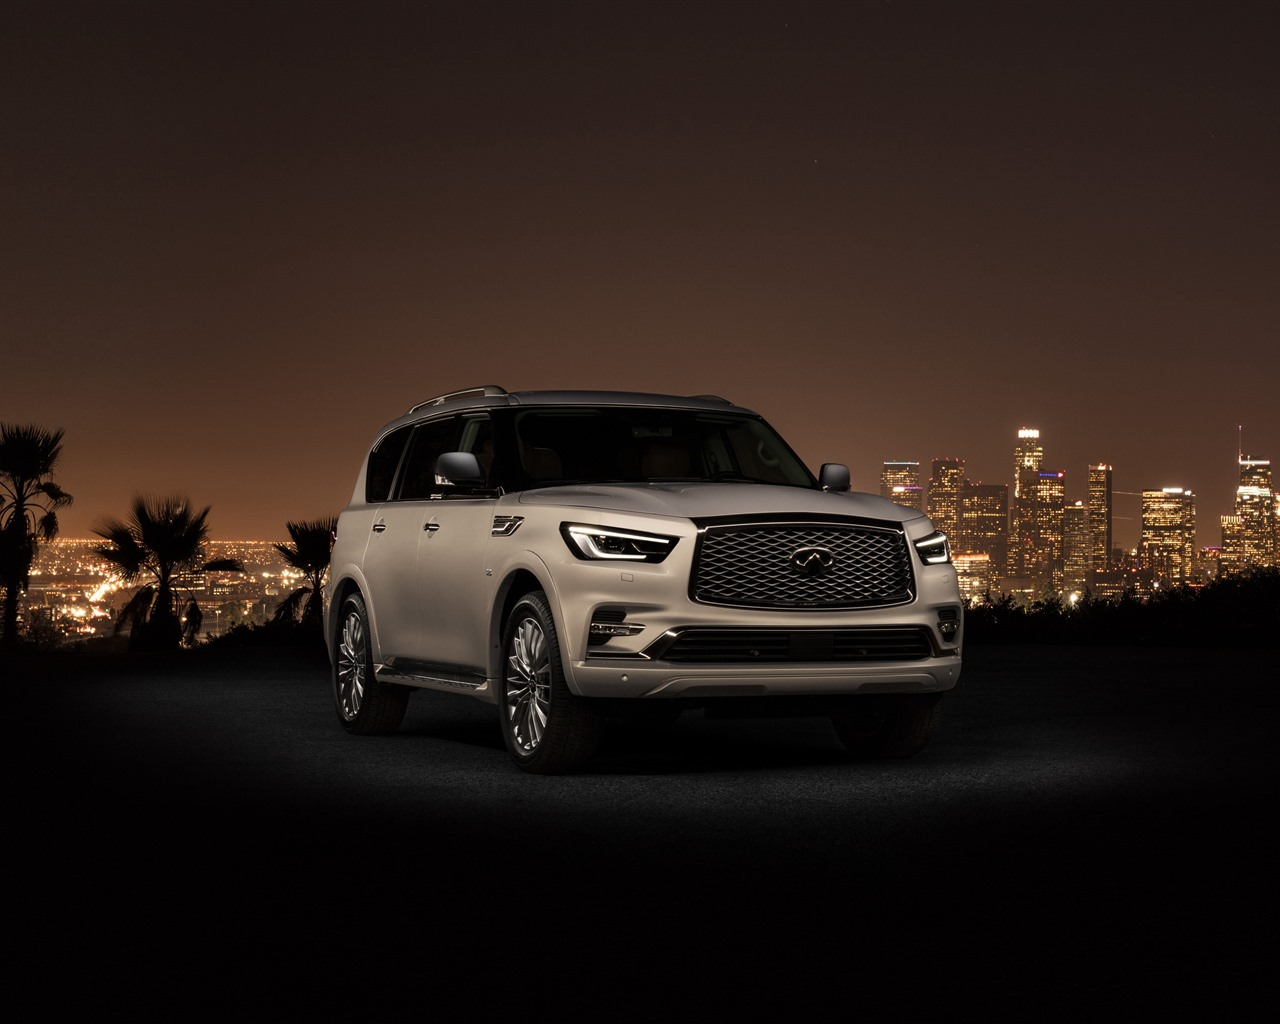 Wallpaper Infiniti Qx80 Suv Car Night City 3840x2160 Uhd